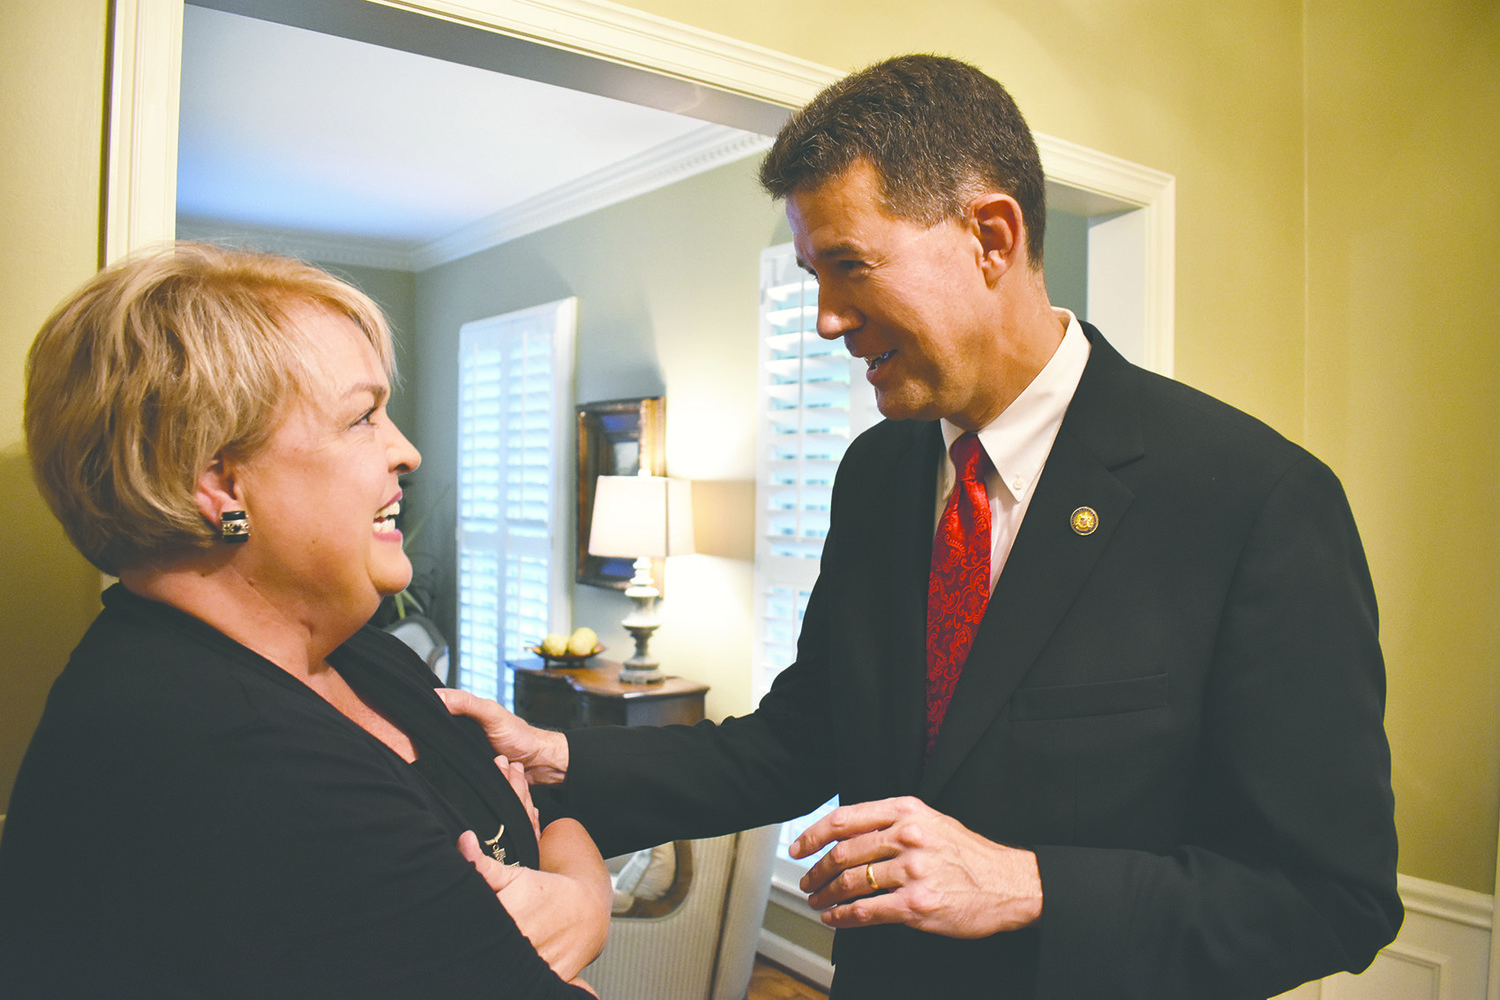 Secretary of State John Merrill, right, shares a moment with state Rep. Connie Rowe, R-Jasper, at a Jasper residence which hosted a campaign meet-and-greet for Merrill on Monday night.